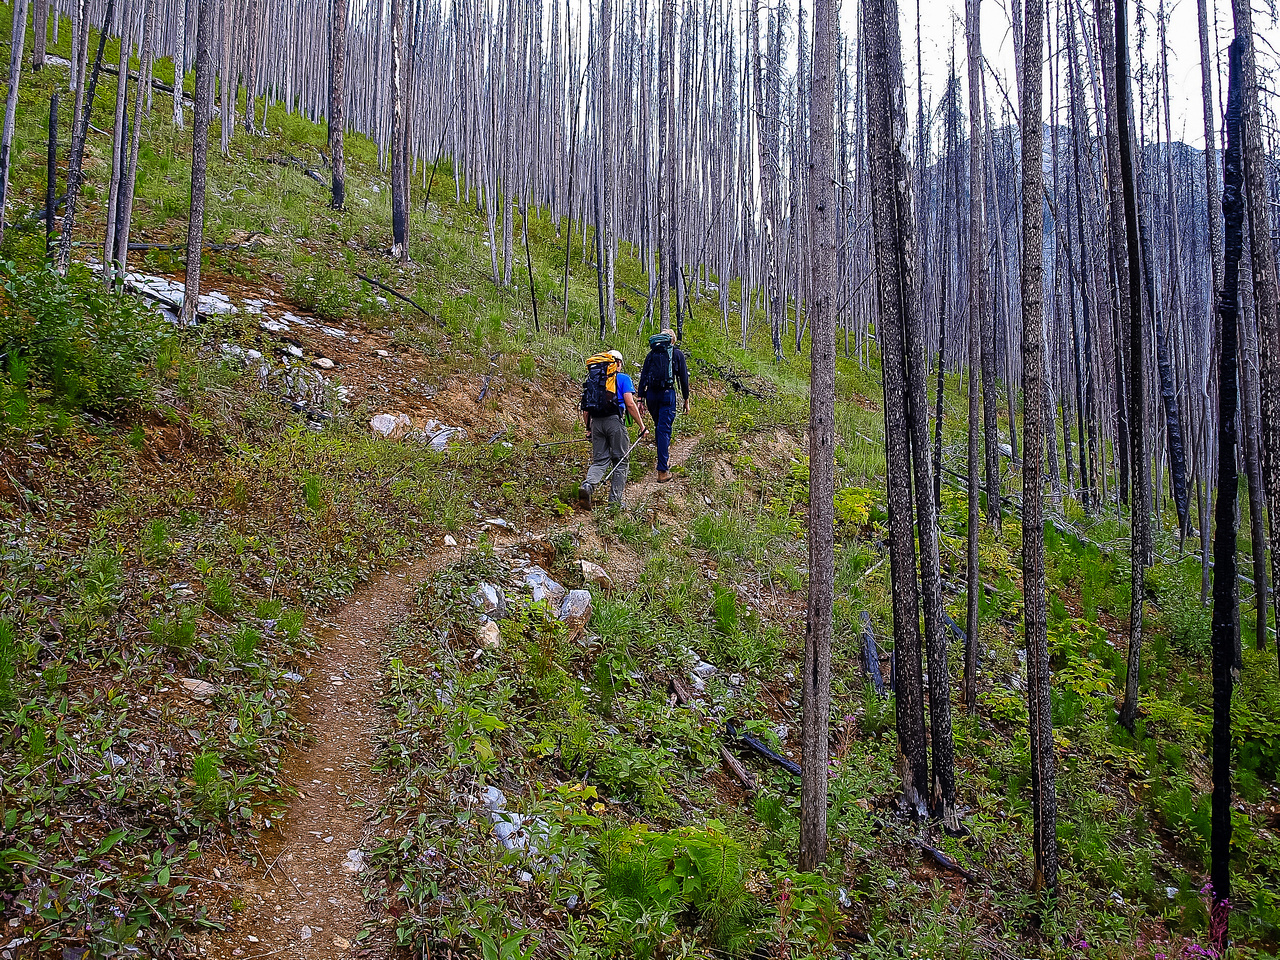 Wietse and Jeff set a brisk pace up the trail through burnt forest.